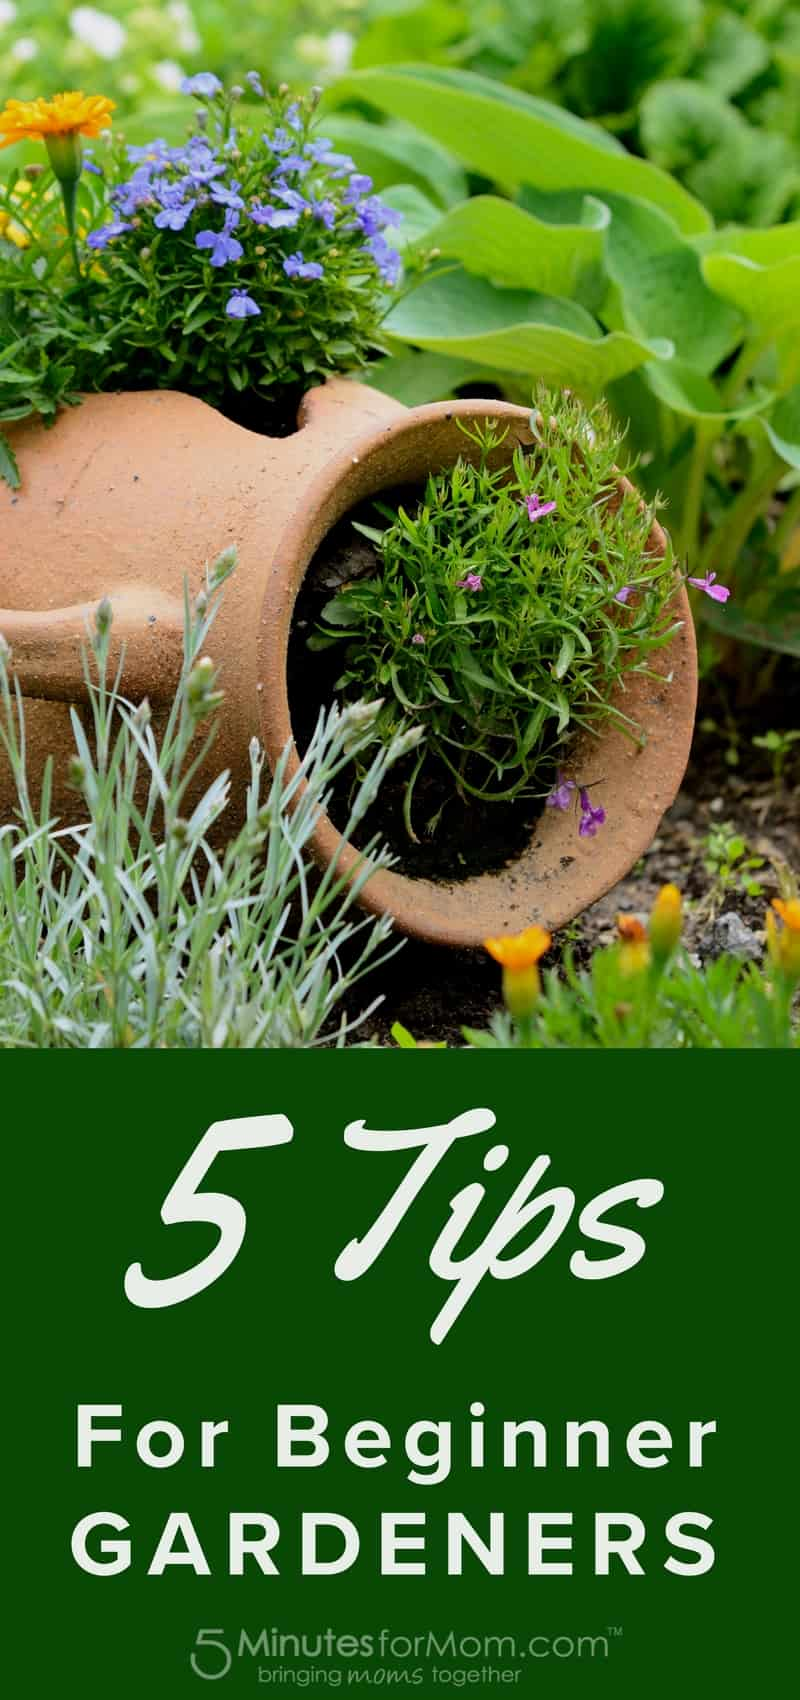 5 Tips for Beginner Gardeners